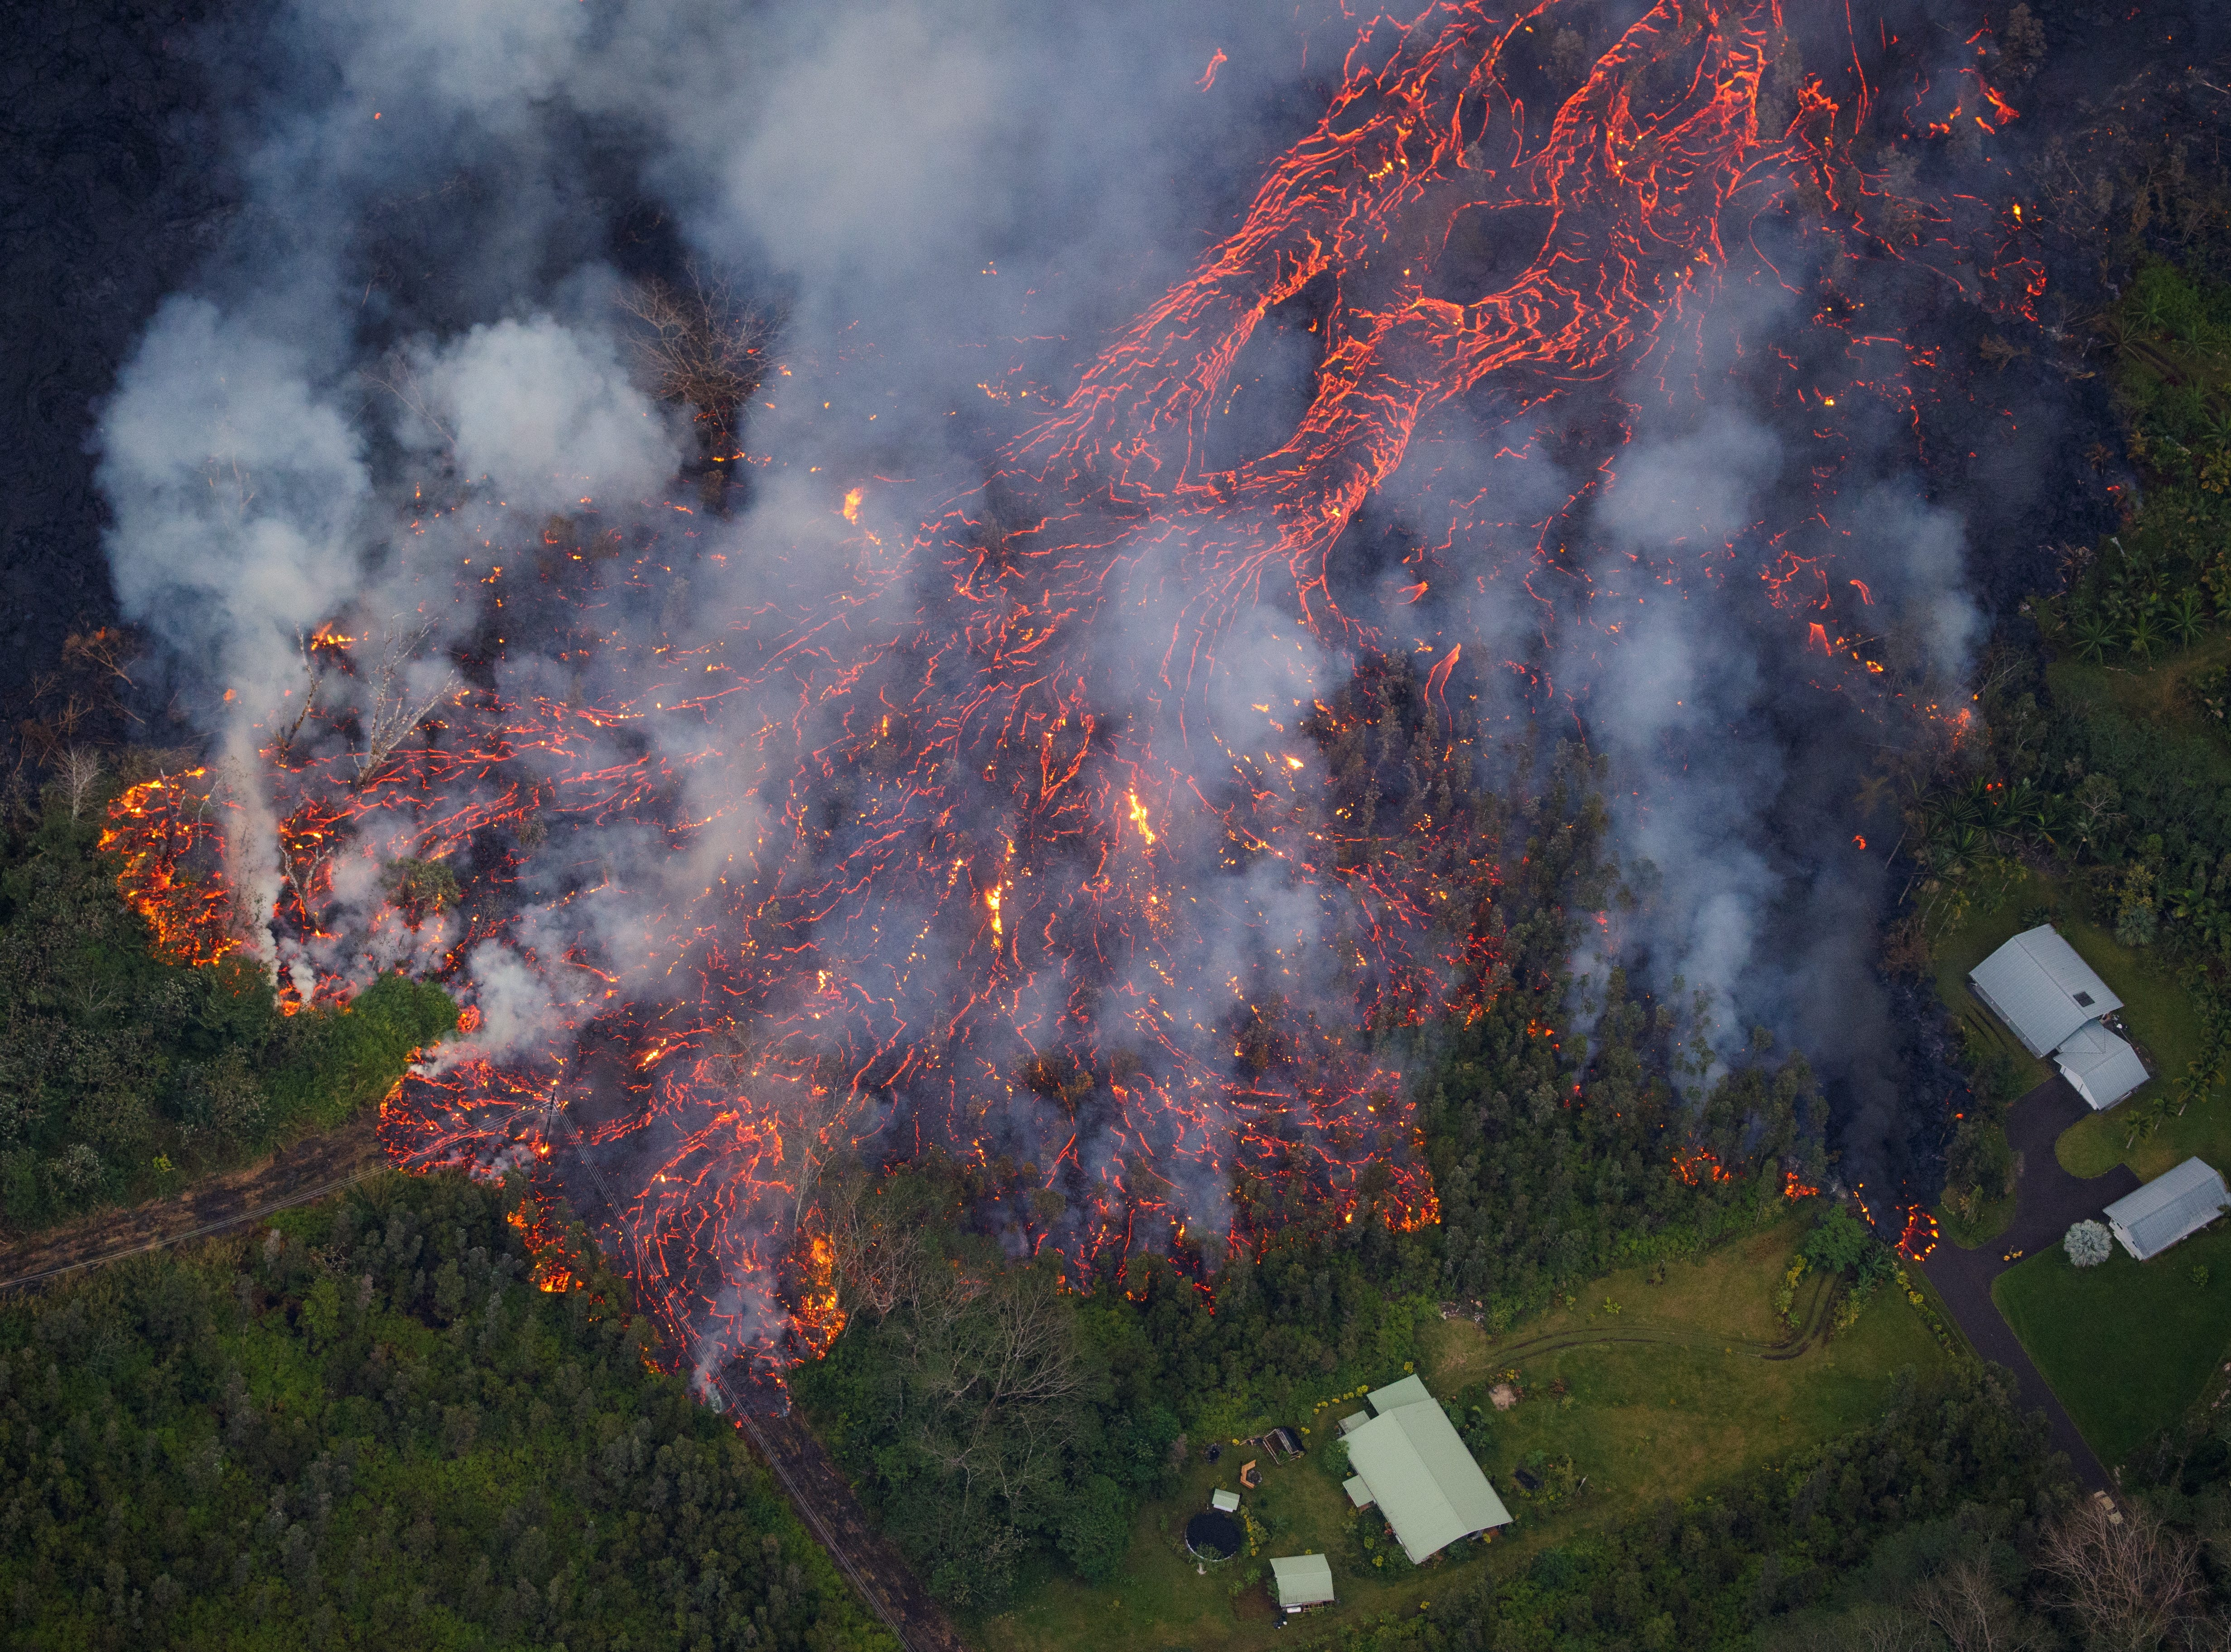 May 31, 2018: Kilauea's lower east rift zone eruption continues, as fissure 8 continues to effuse lava at a high rate, feeding a massive river that meanders toward the coast in Pahoa, Hawaii. The slow pace of the flow has created a raised channel, increasing the potential for breaches as seen in the photo.  Mandatory evacuations were ordered for the Leilani Estates subdivision.